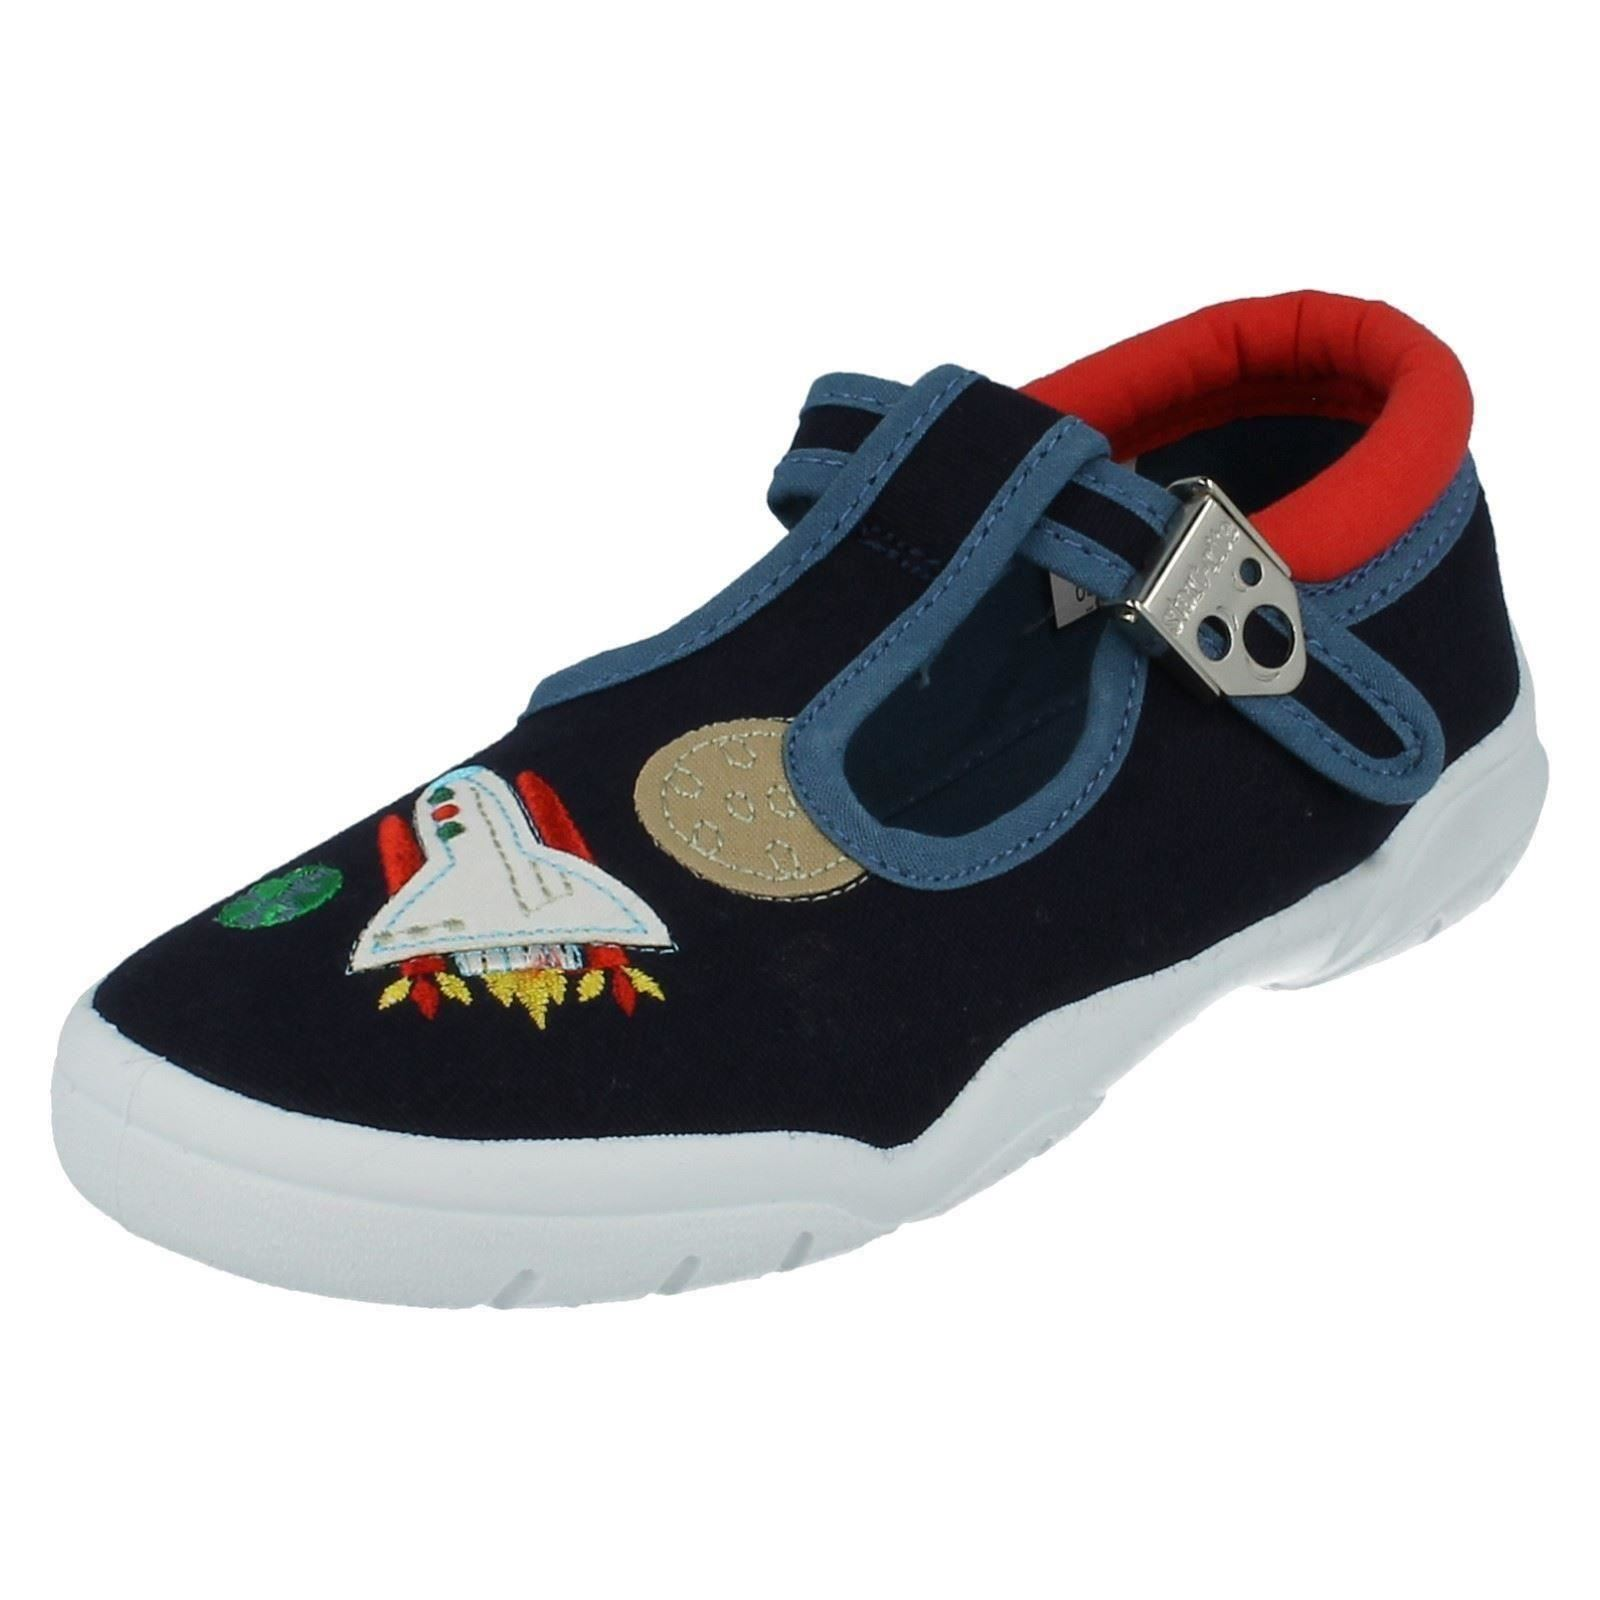 Boys Start Rite Shoes The Style - Space Cadet Navy 12 UK E  c75604ad0